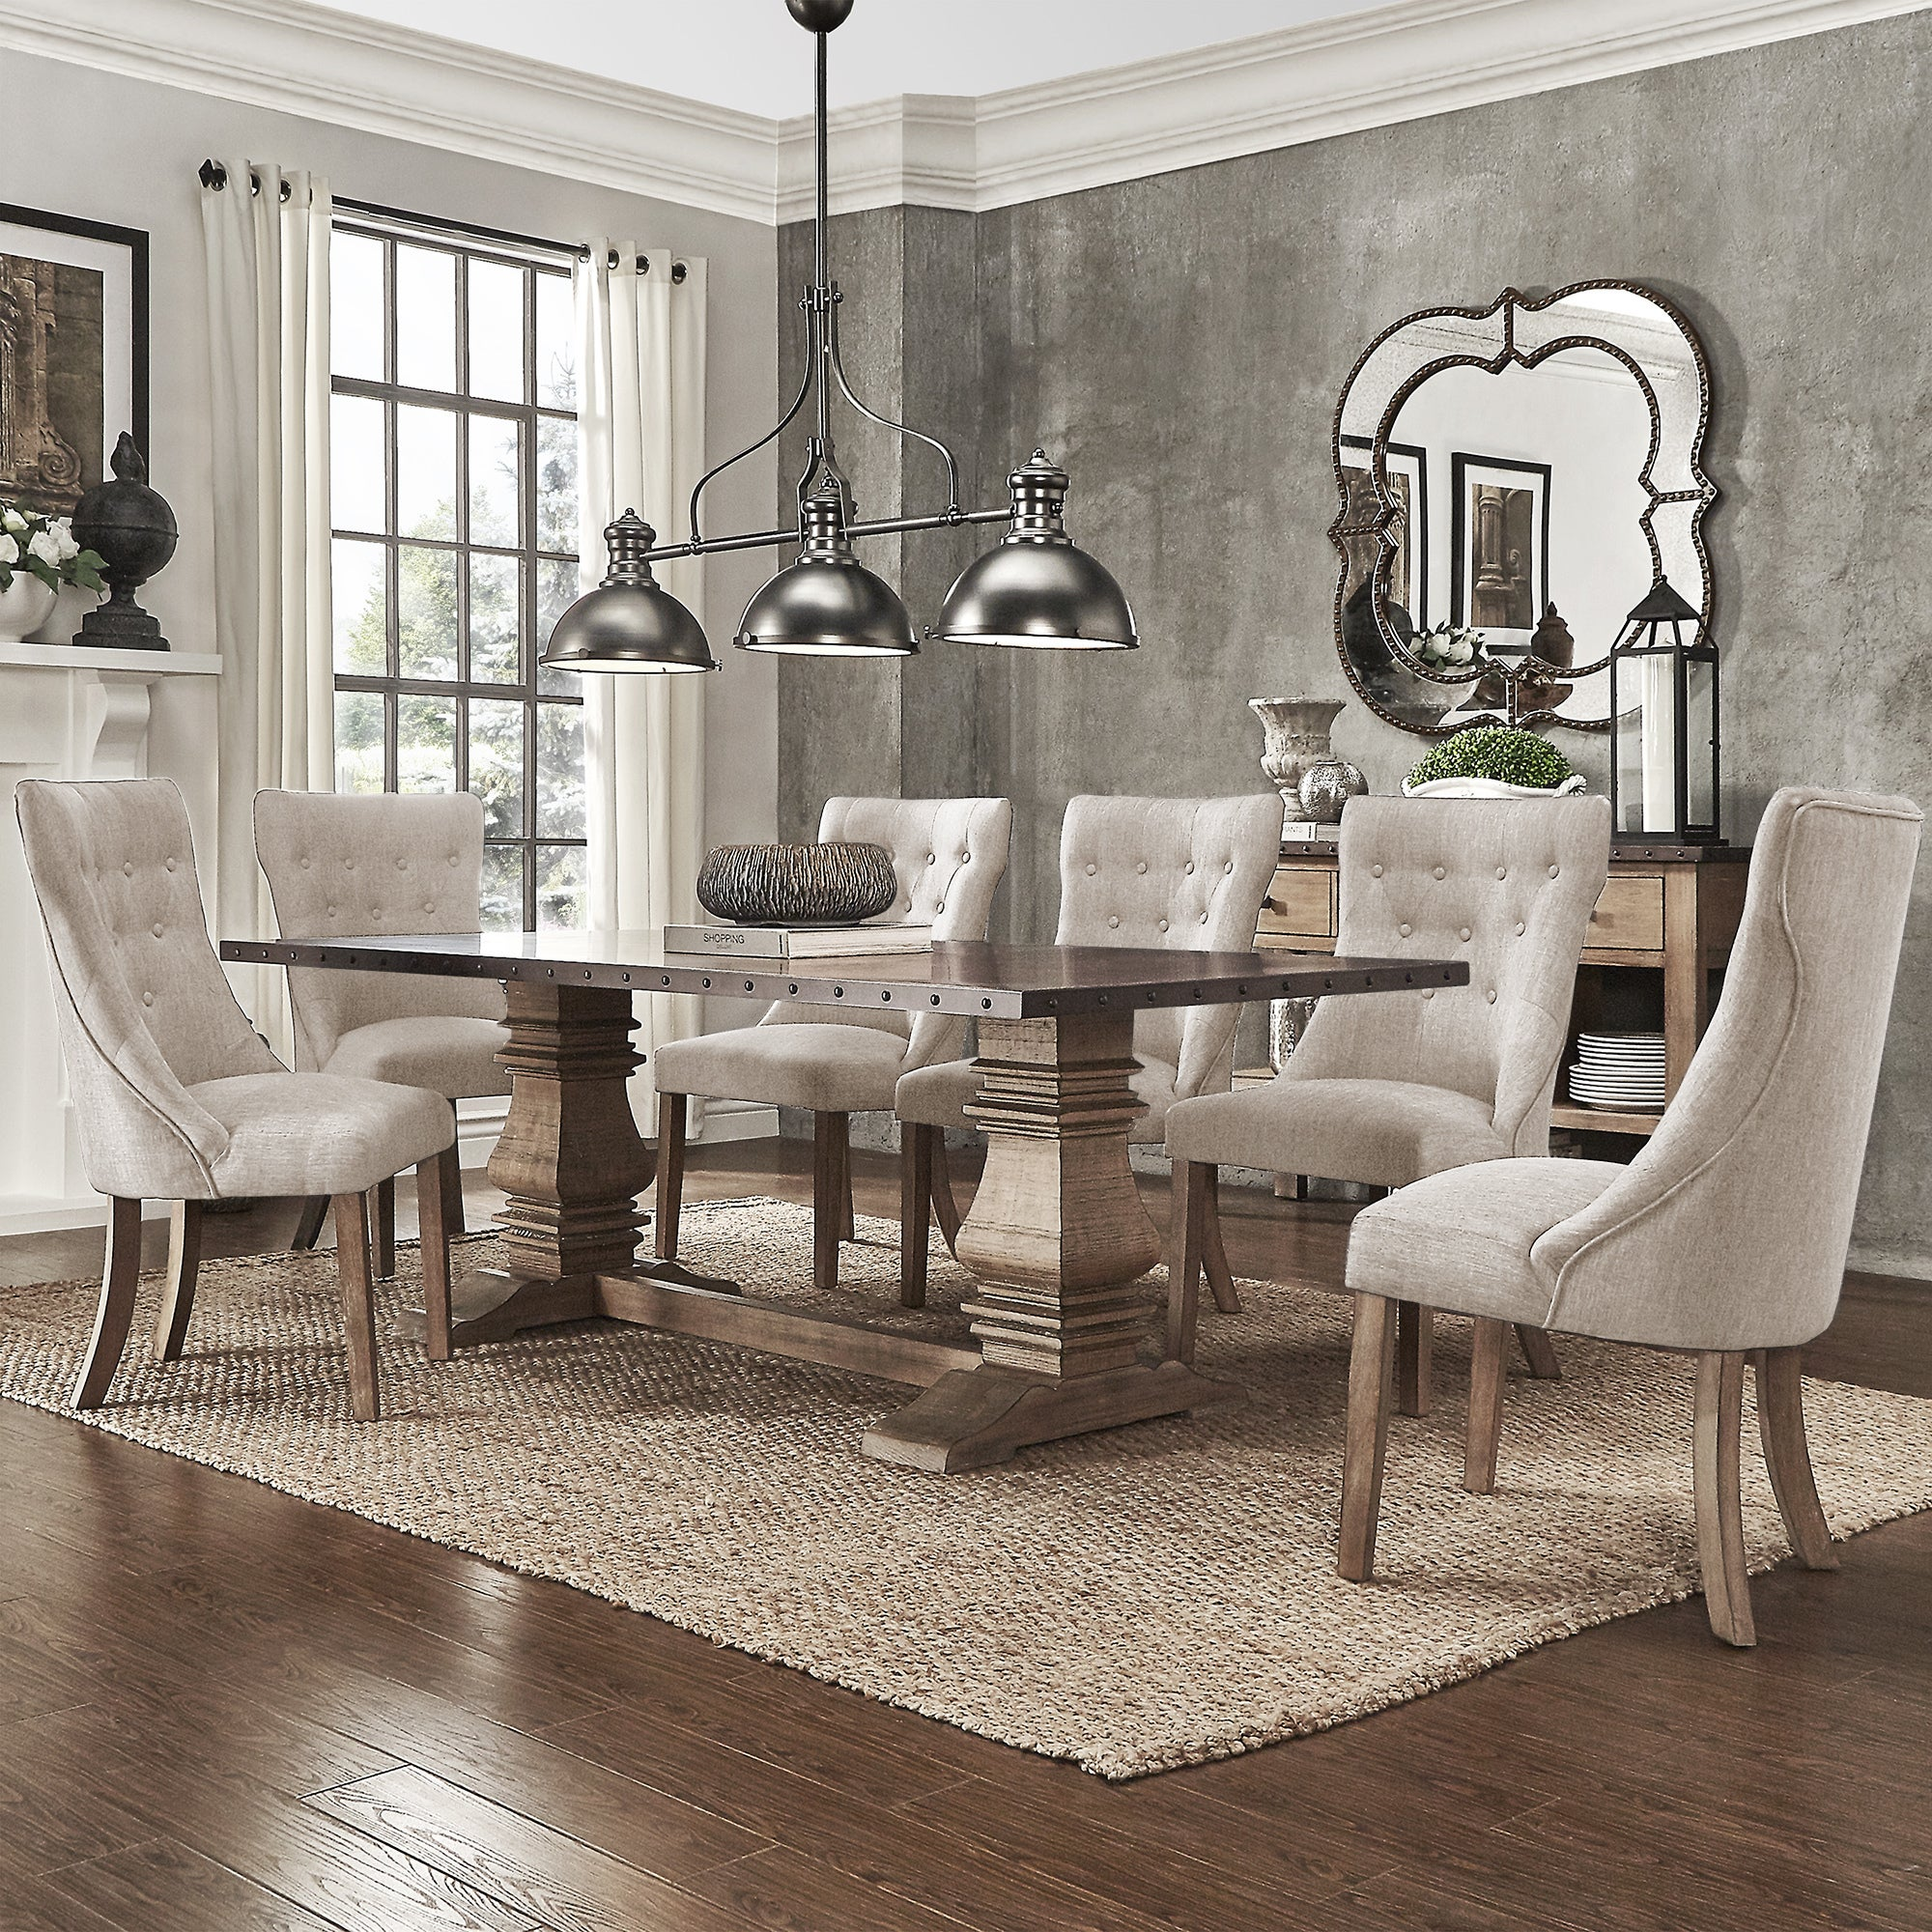 Shop janelle extended rustic zinc dining set with tufted chairs by inspire q artisan free shipping today overstock com 19842961